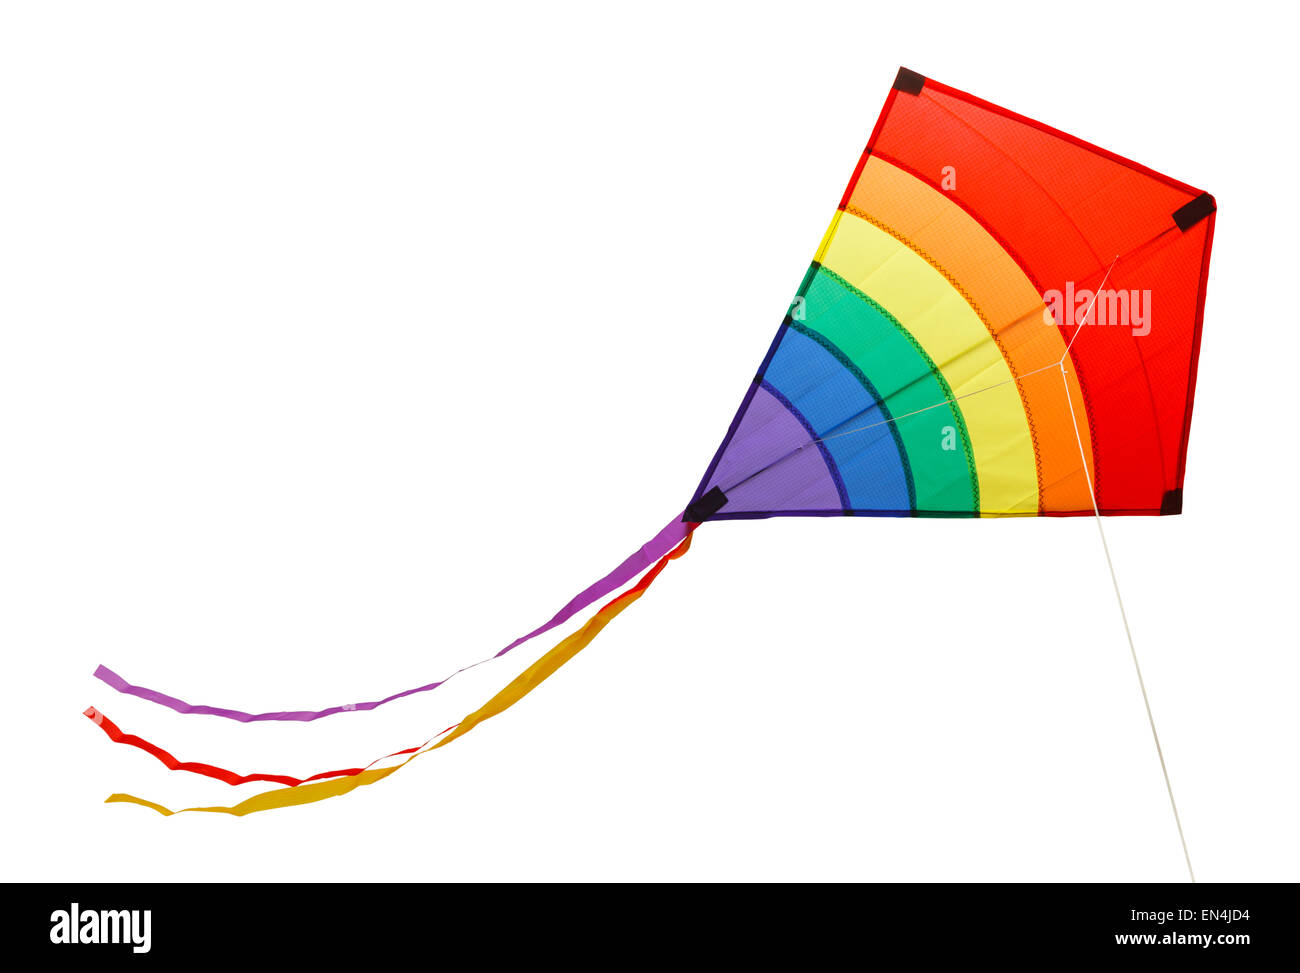 hight resolution of small flying rainbow kite isolated on a white background stock image